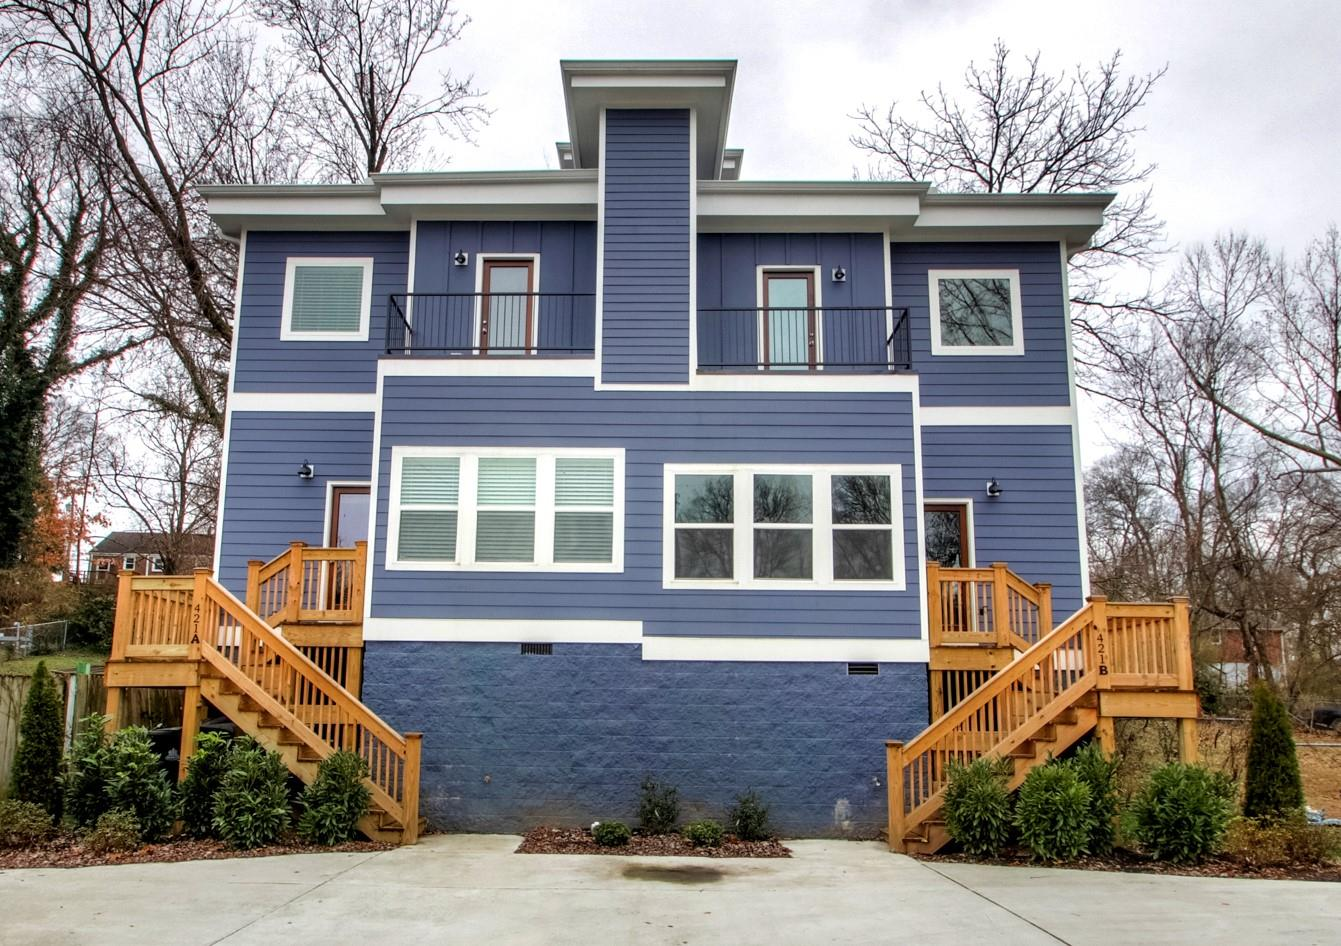 421A Moore Ave, Nashville - Midtown, Tennessee